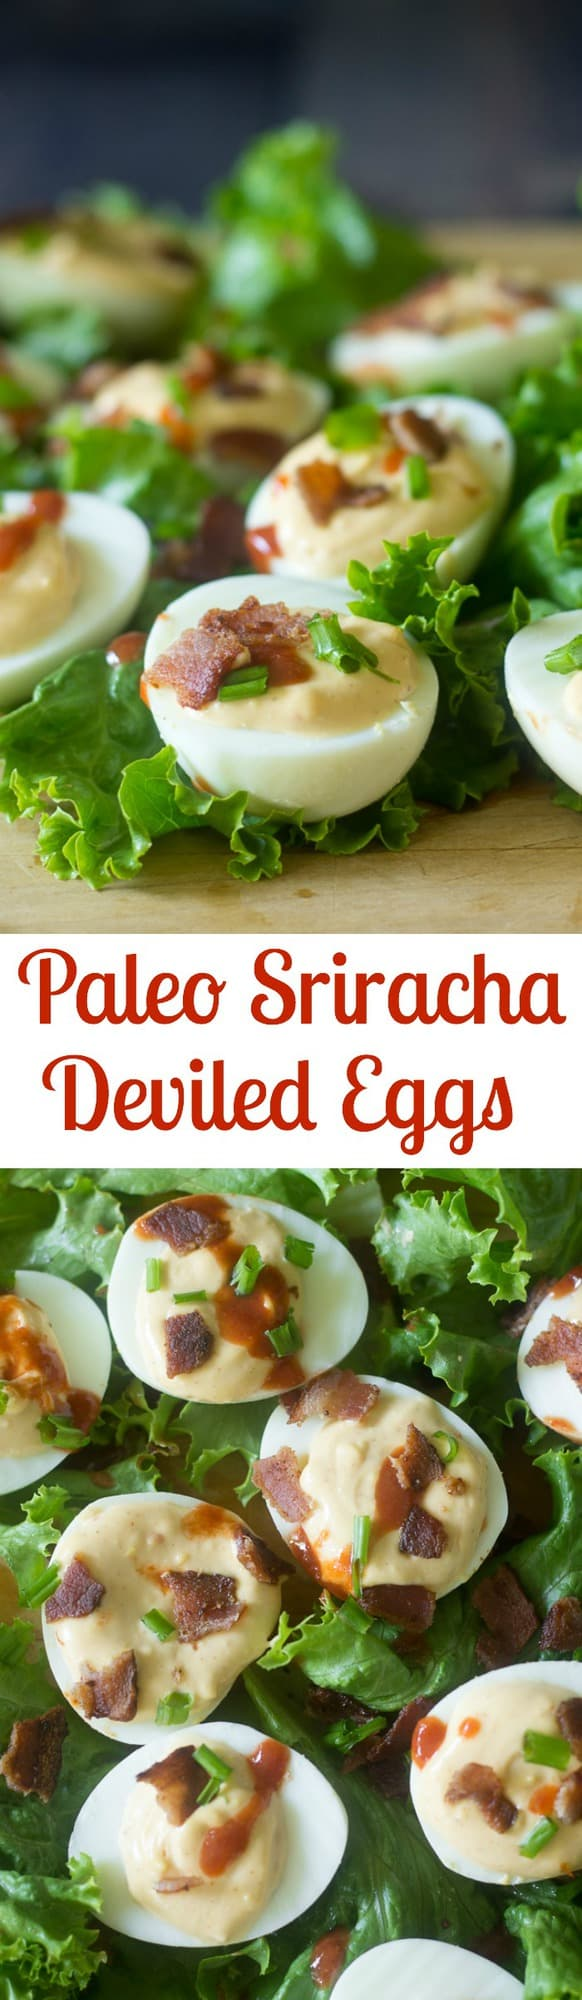 Spicy deviled eggs with bacon and easy Paleo sriracha mayo! Grain free, soy free, Paleo, great appetizer or snack made with healthy whole ingredients!